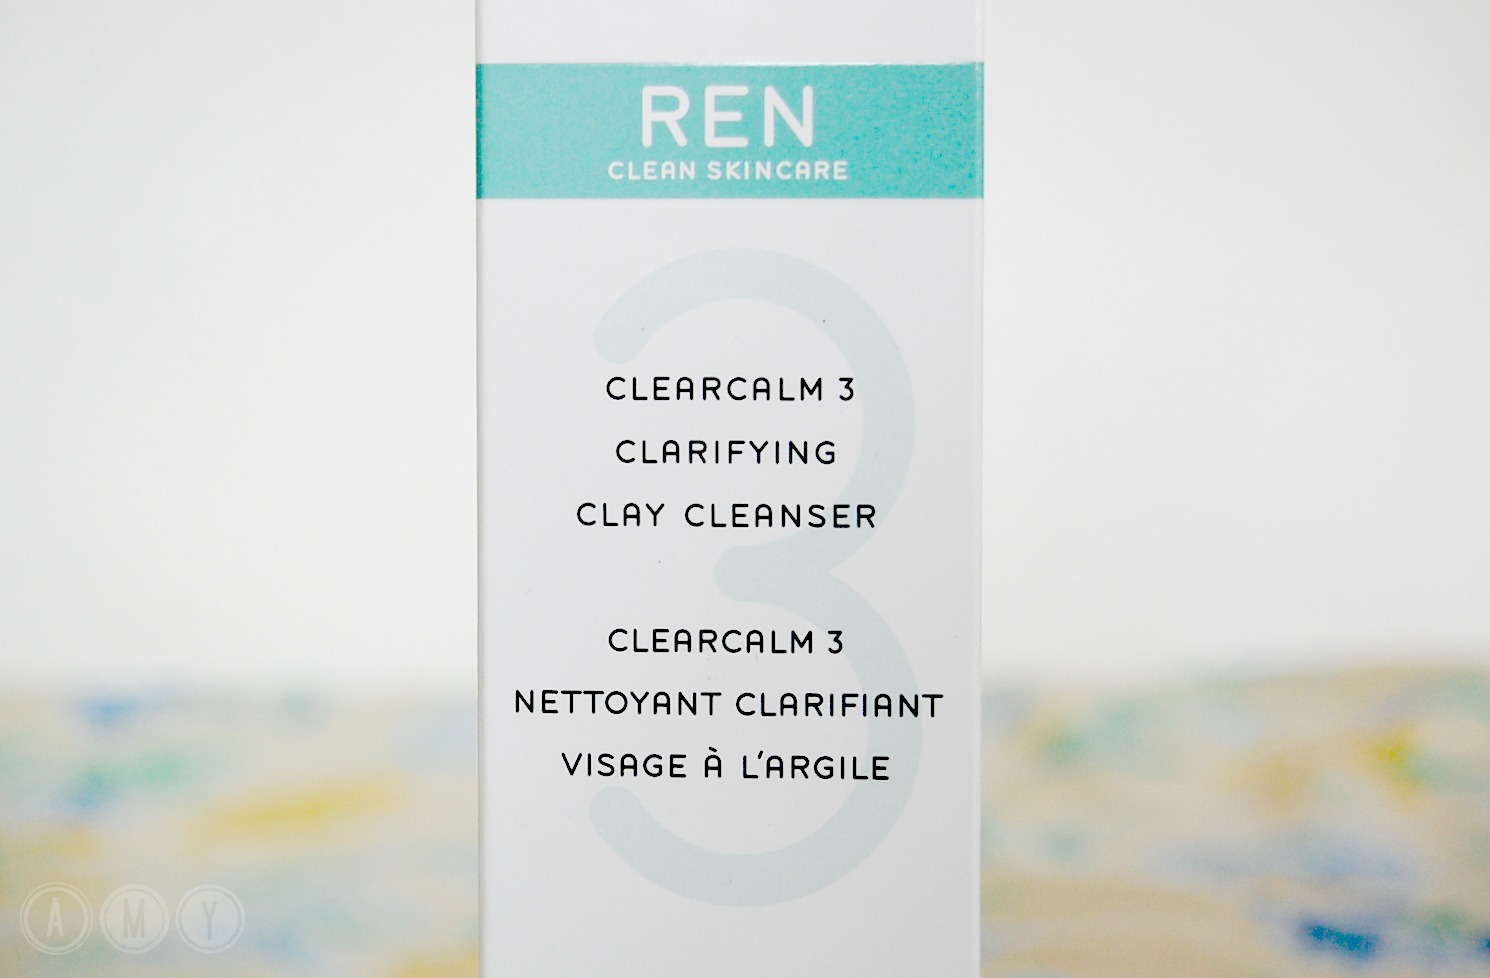 REN ClearCalm 3 Clarifying Clay Cleanser Review